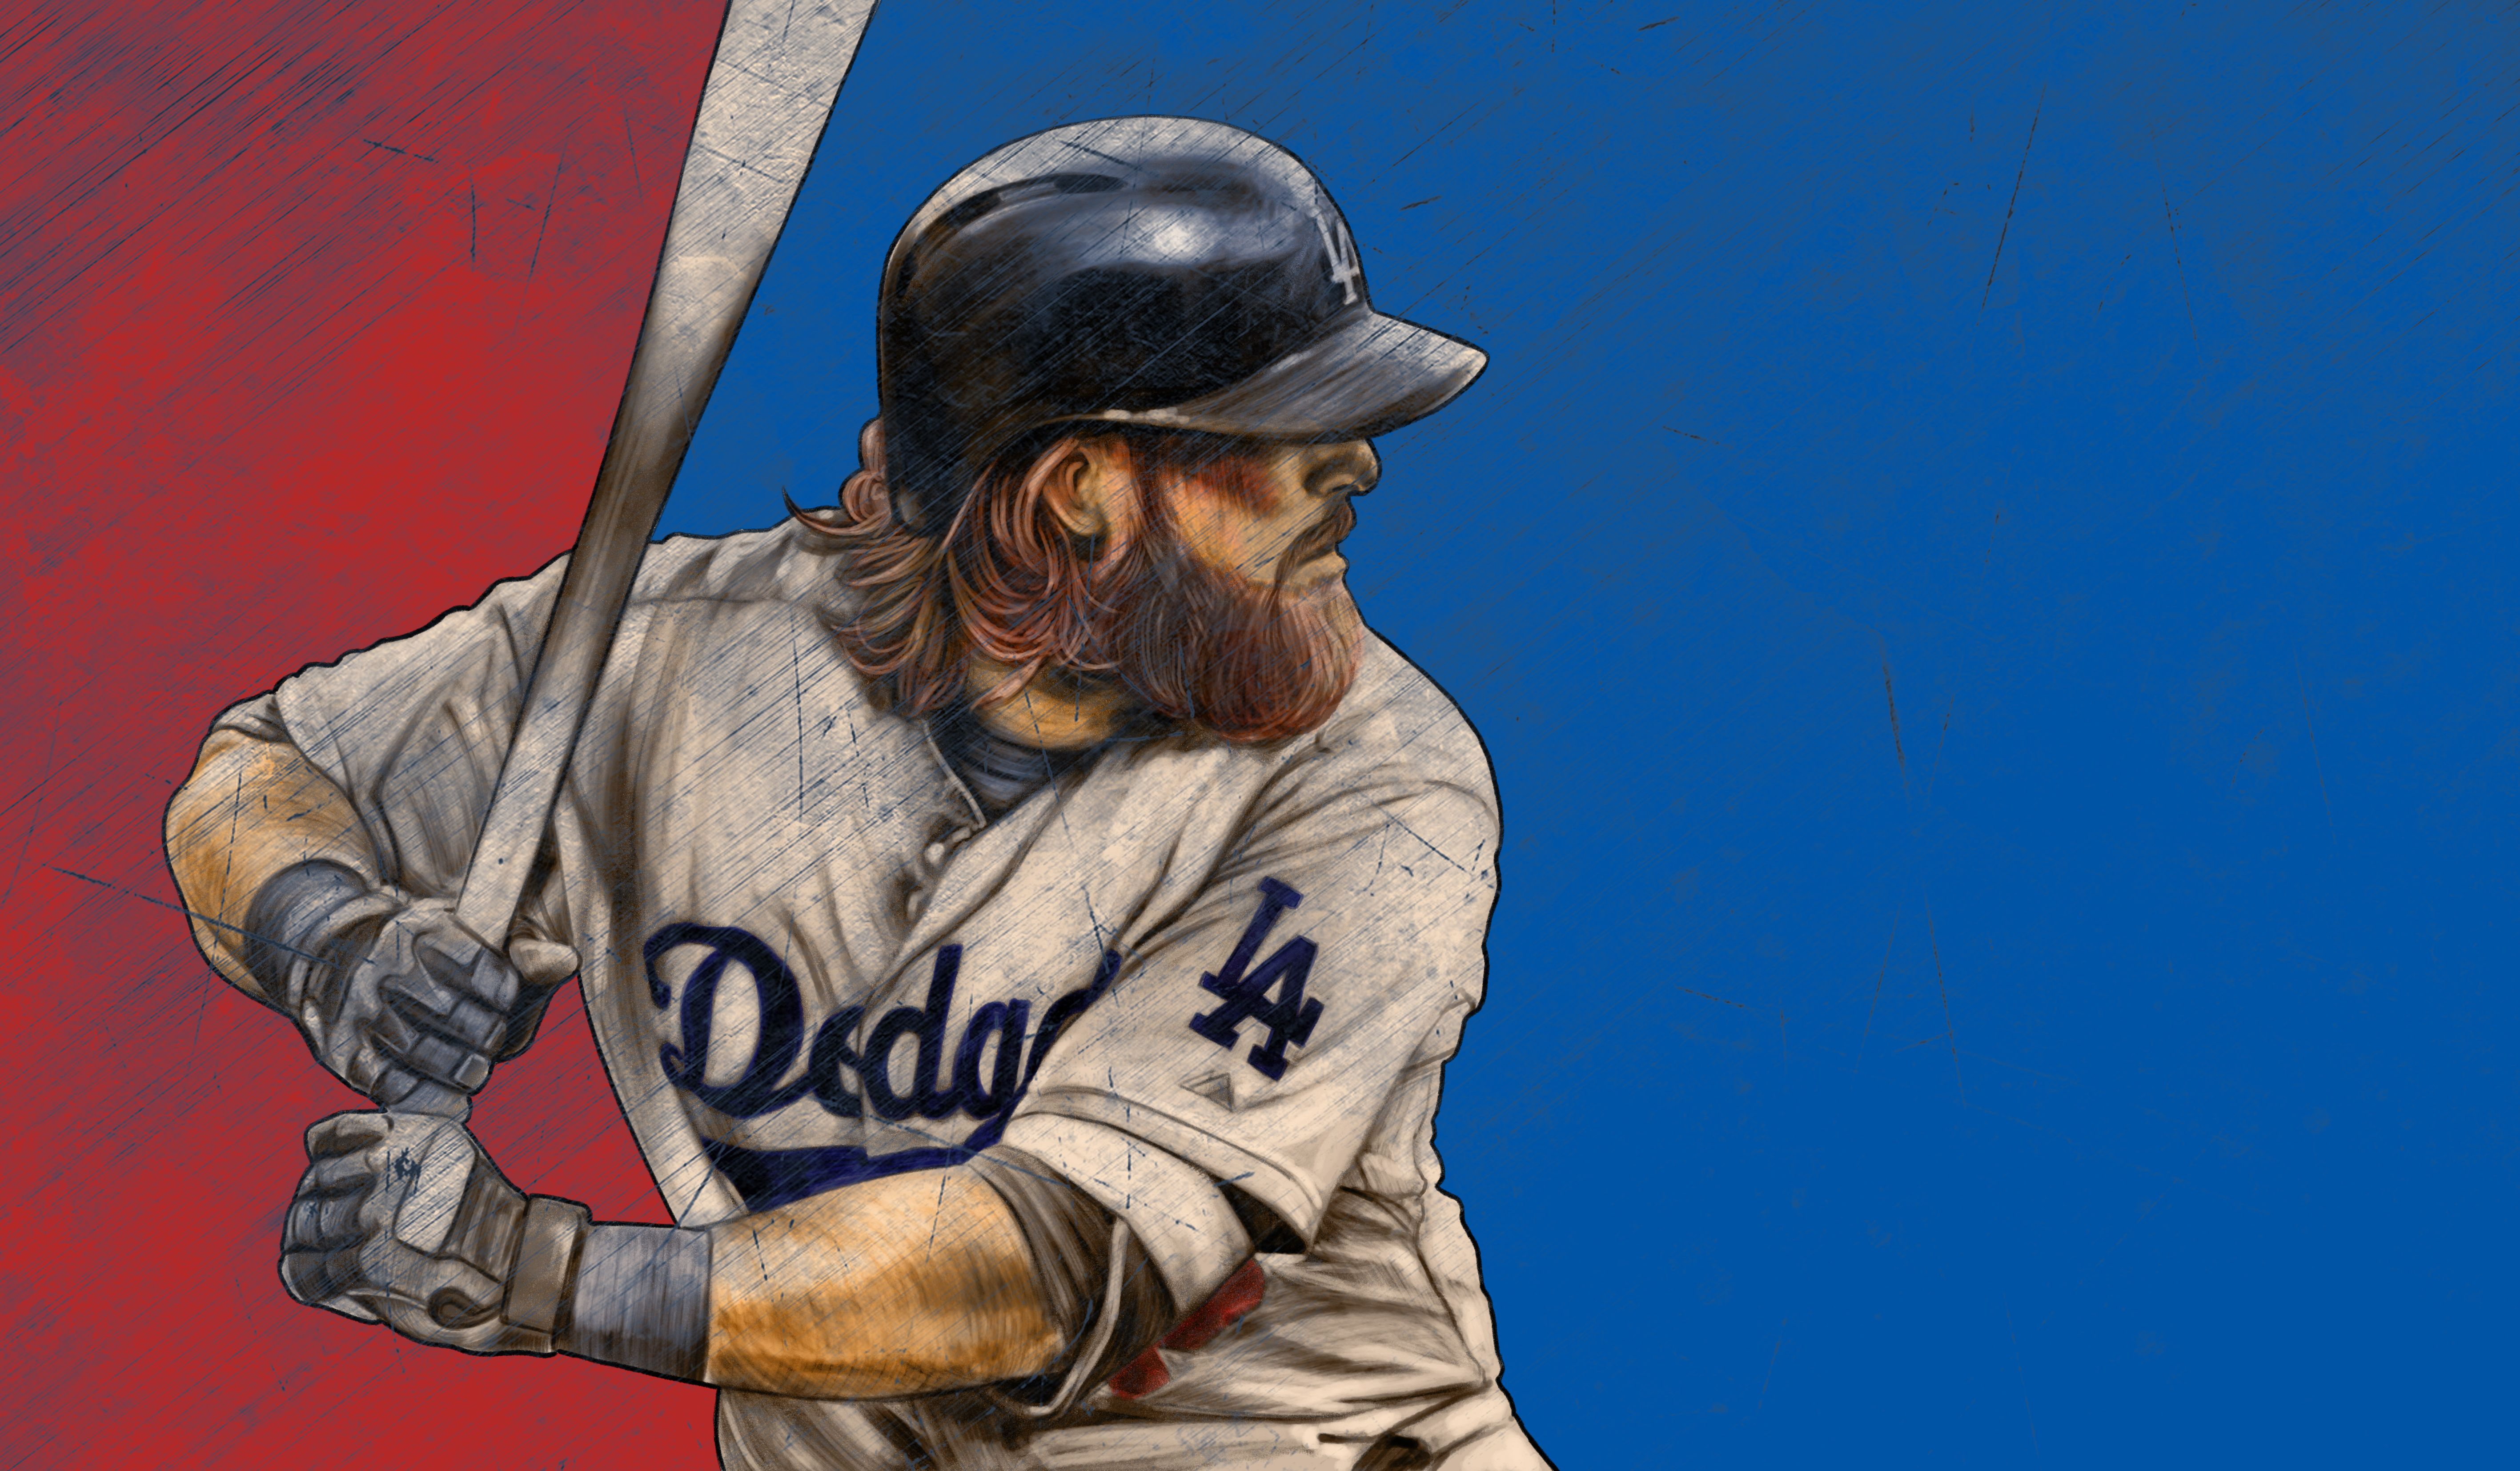 the new meaning of fear the beard! go dodgers! bleed blue